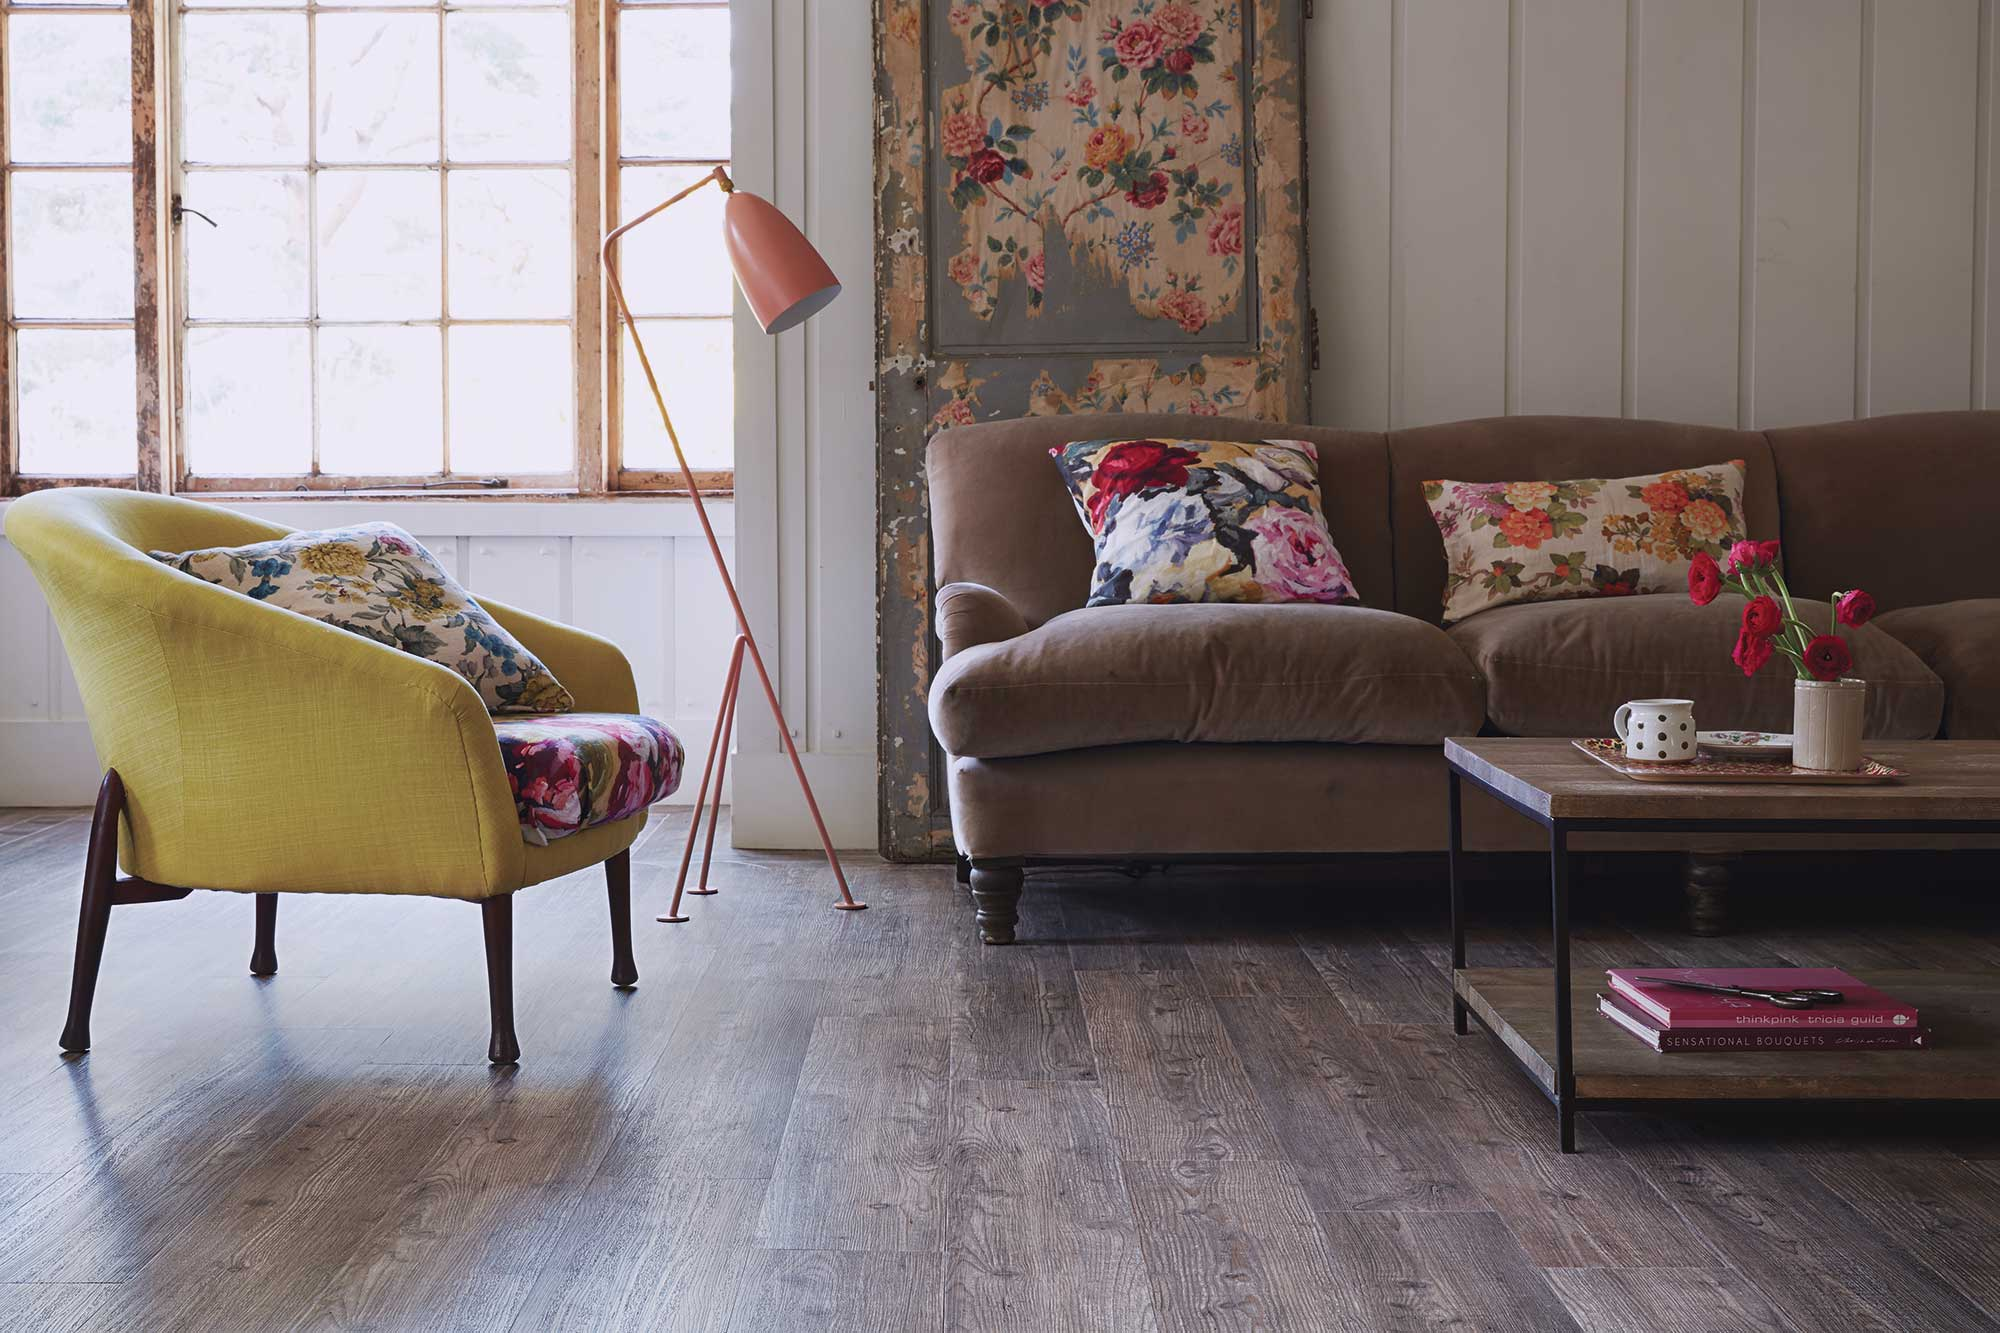 Furniture on a wooden flooring